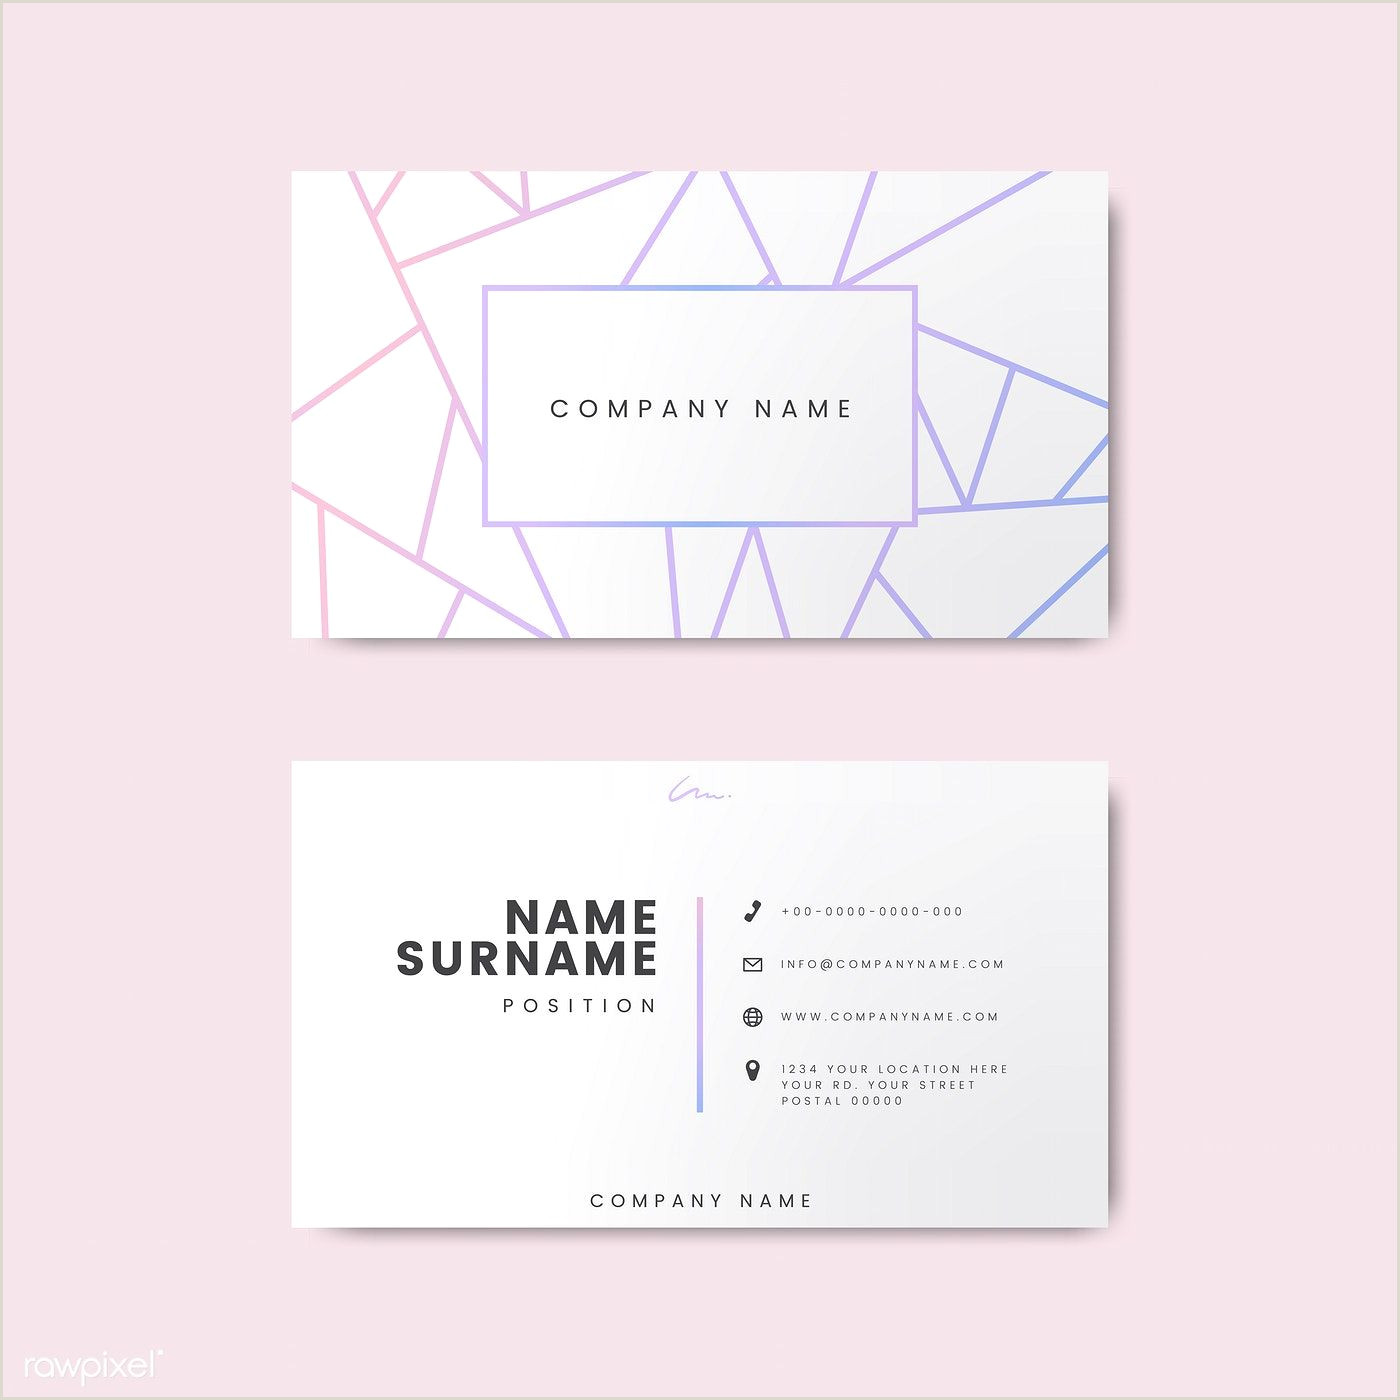 Best Business Cards Geometric Pin On Design